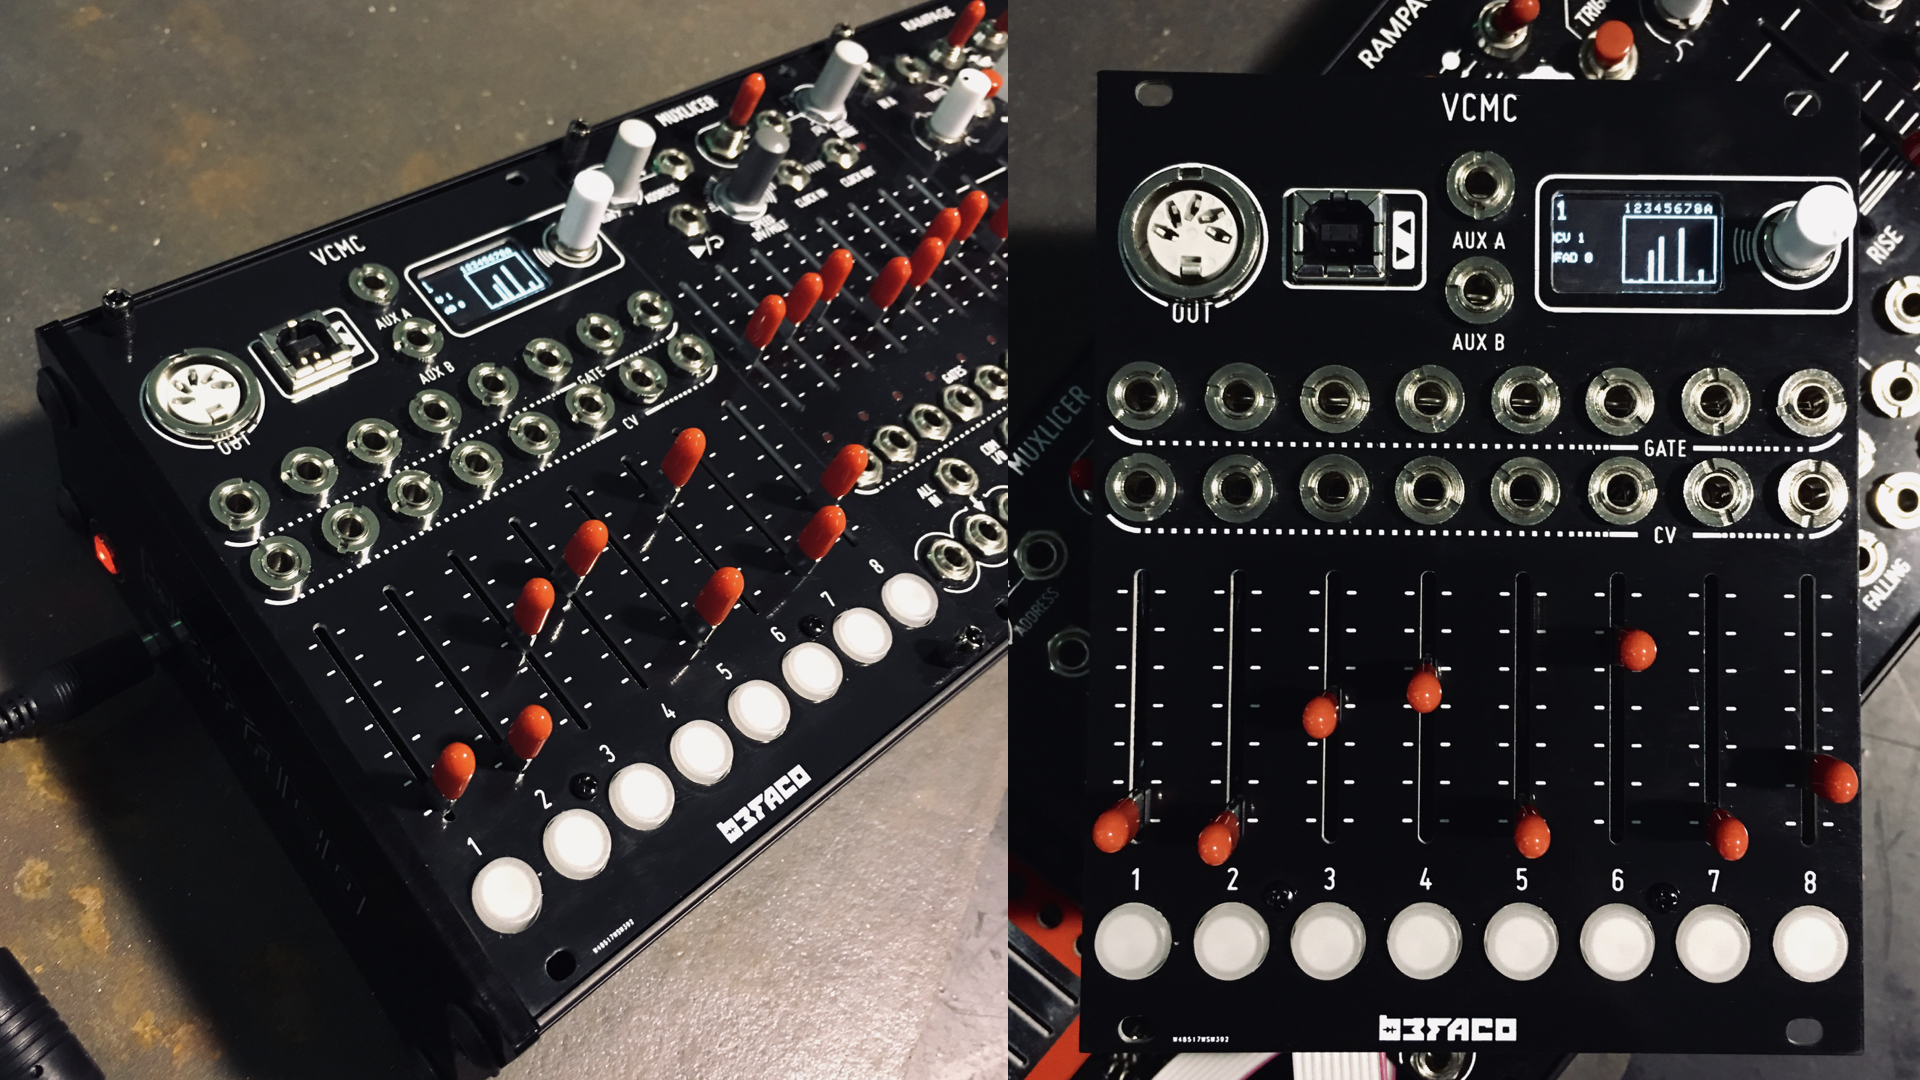 Befaco Reveals VCMC Voltage Controlled MIDI Controller Ahead